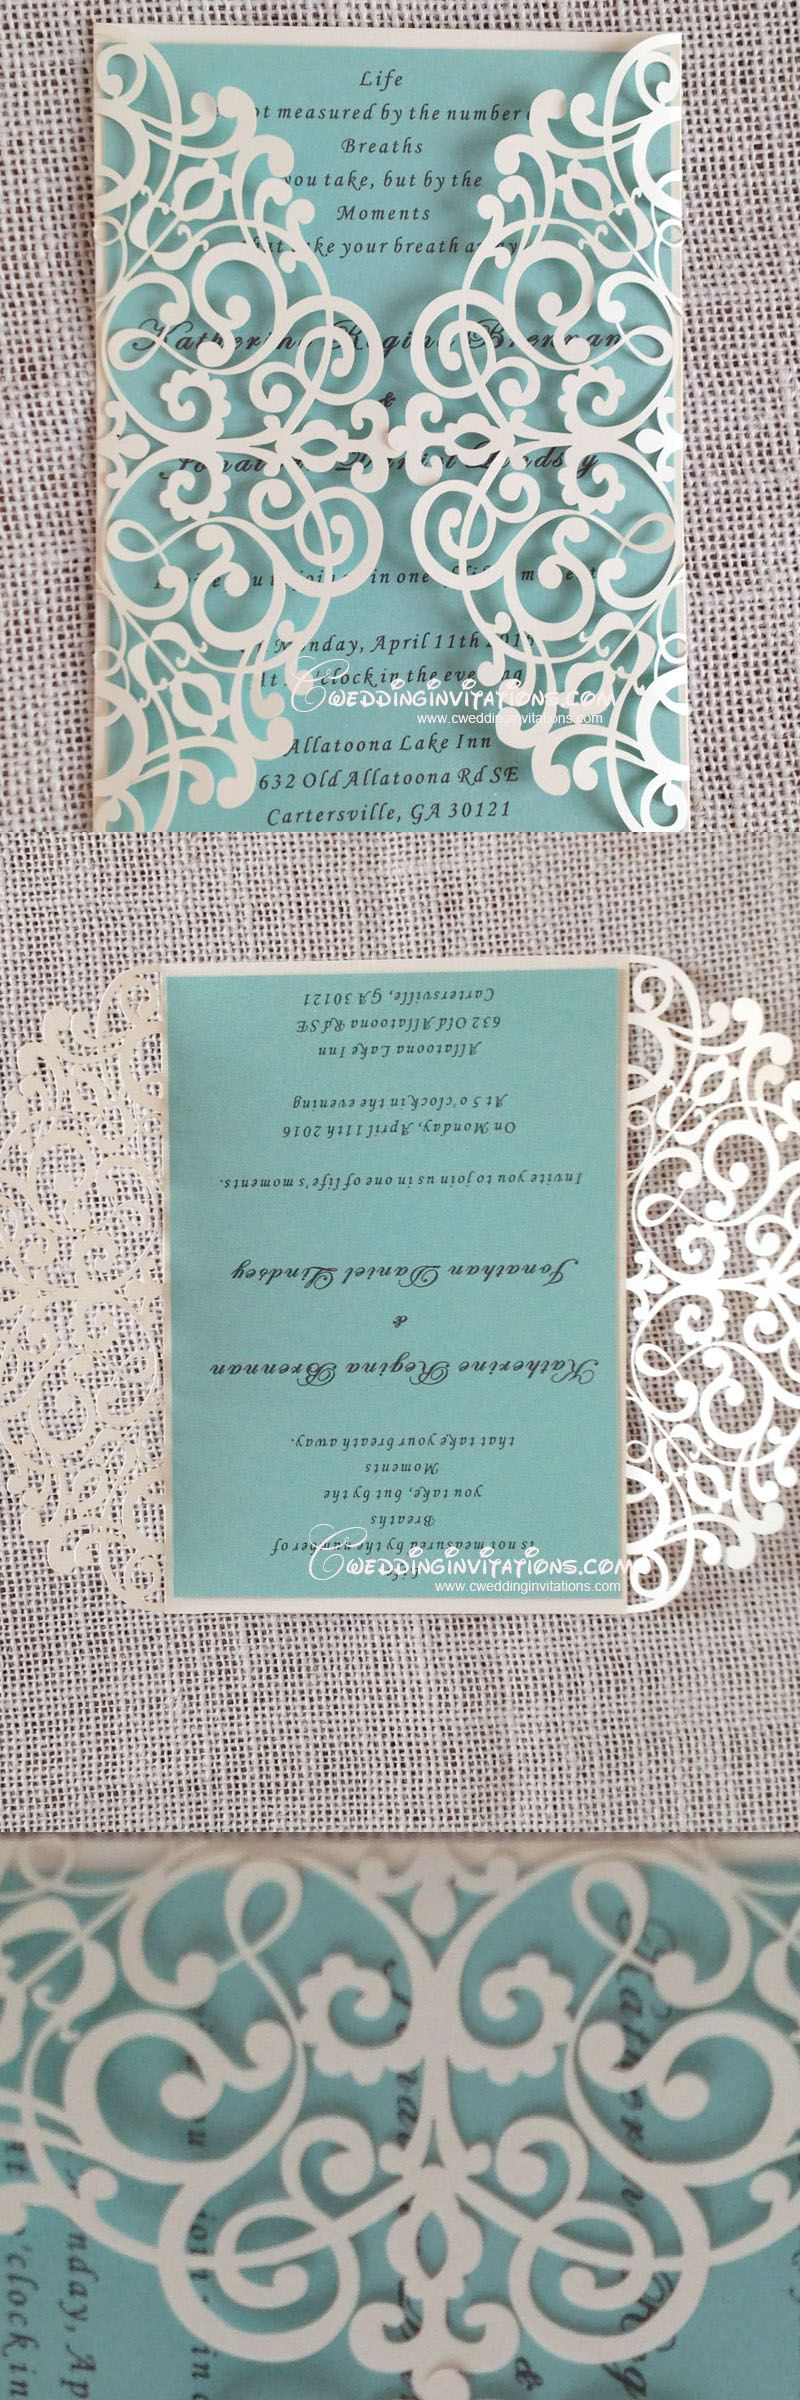 Tiffany Blue Laser Cut Wedding Invitations, Laser Cut Wedding Invitations, Wedding  Invitations, Wedding Cards, Www.